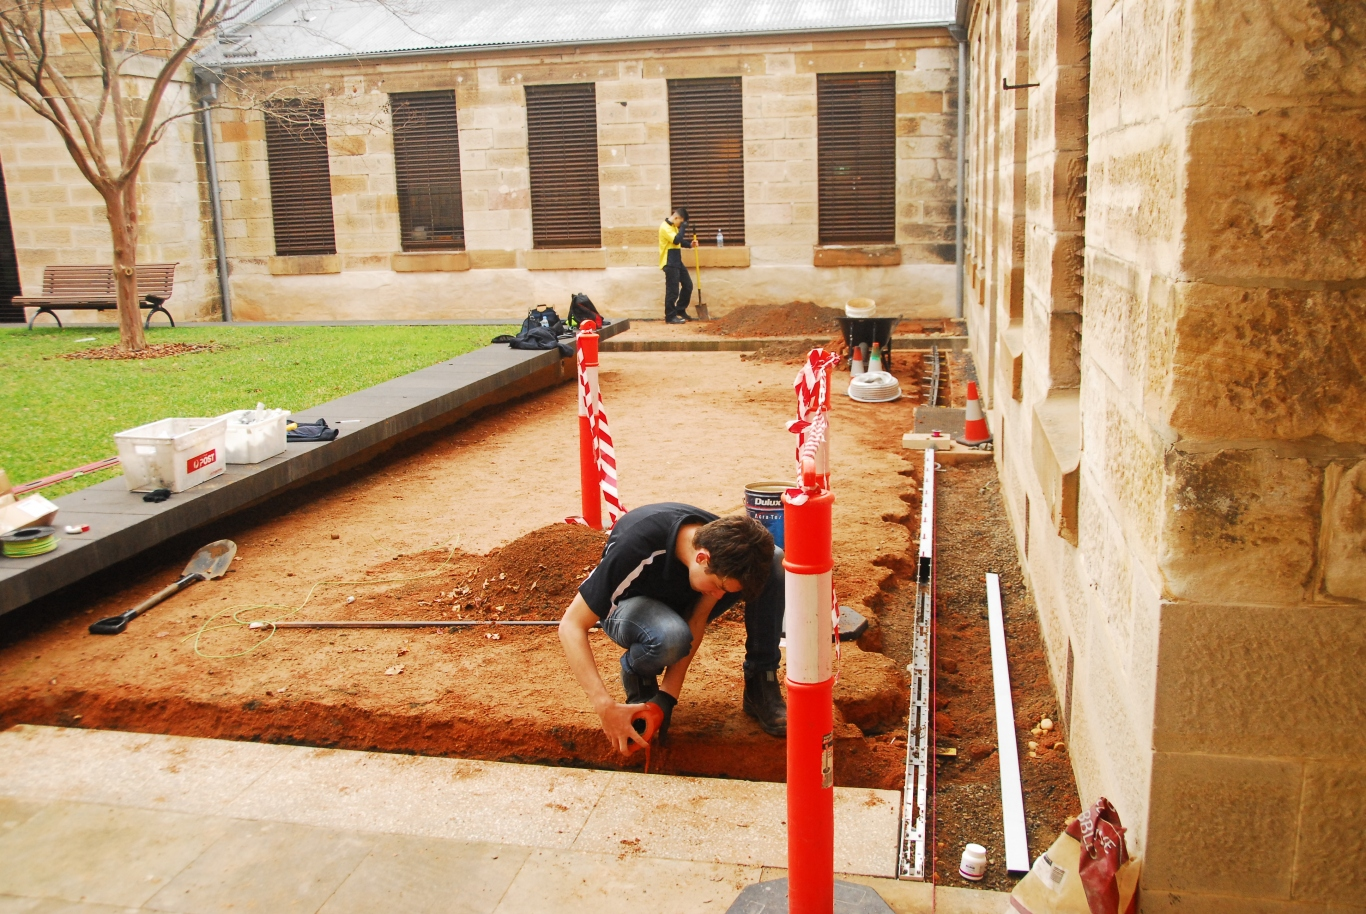 Excavtion with two men working in crouched position with lawn and sandstone building in background.